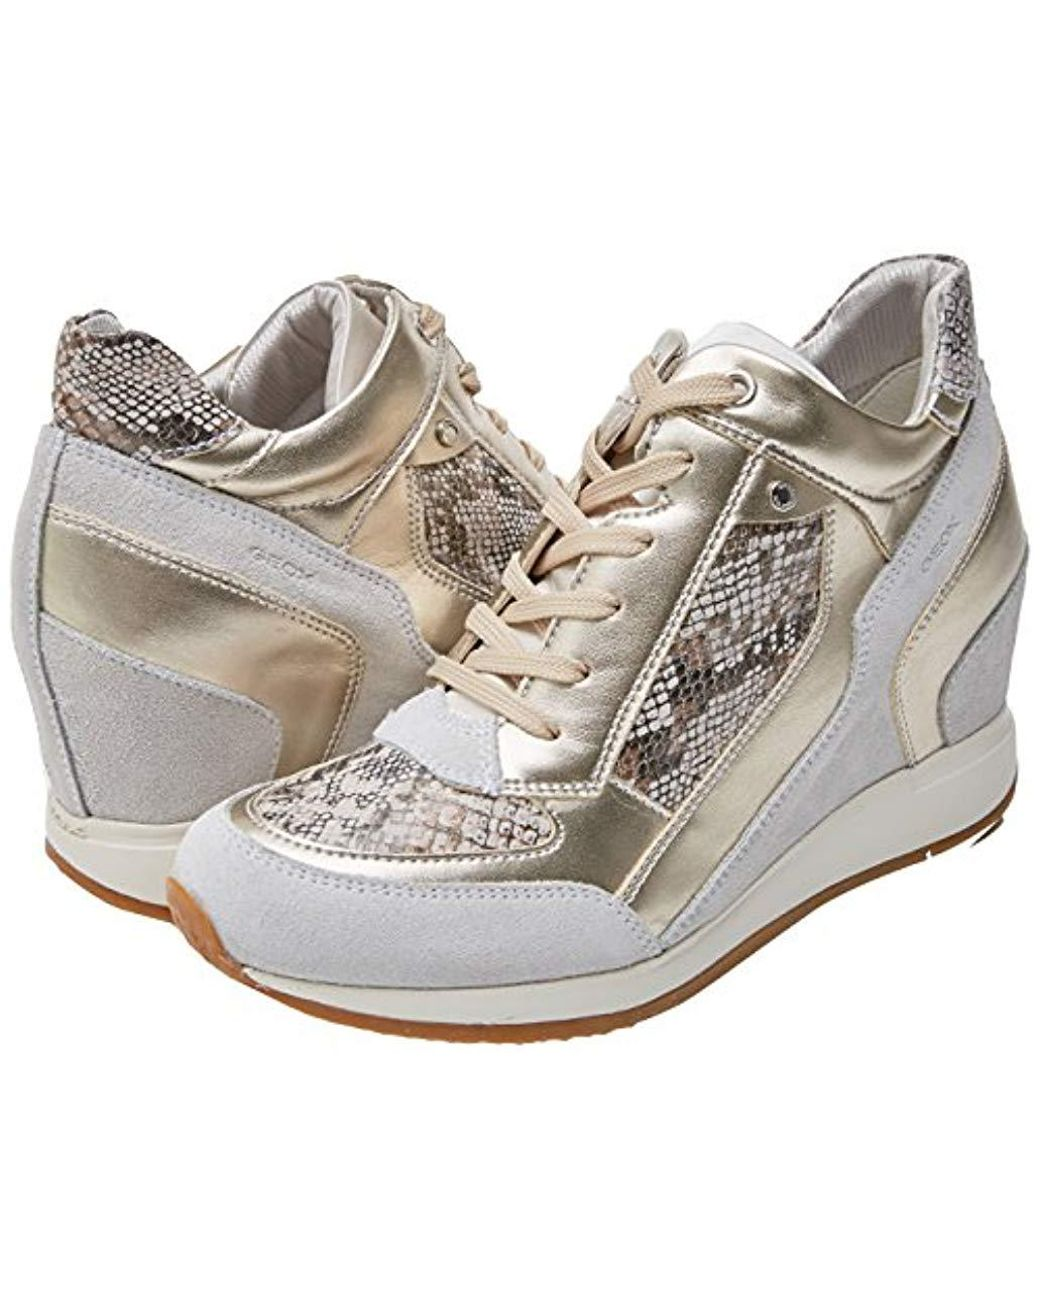 177f37d54b Geox Nydame 6 Sneaker in White - Save 2% - Lyst